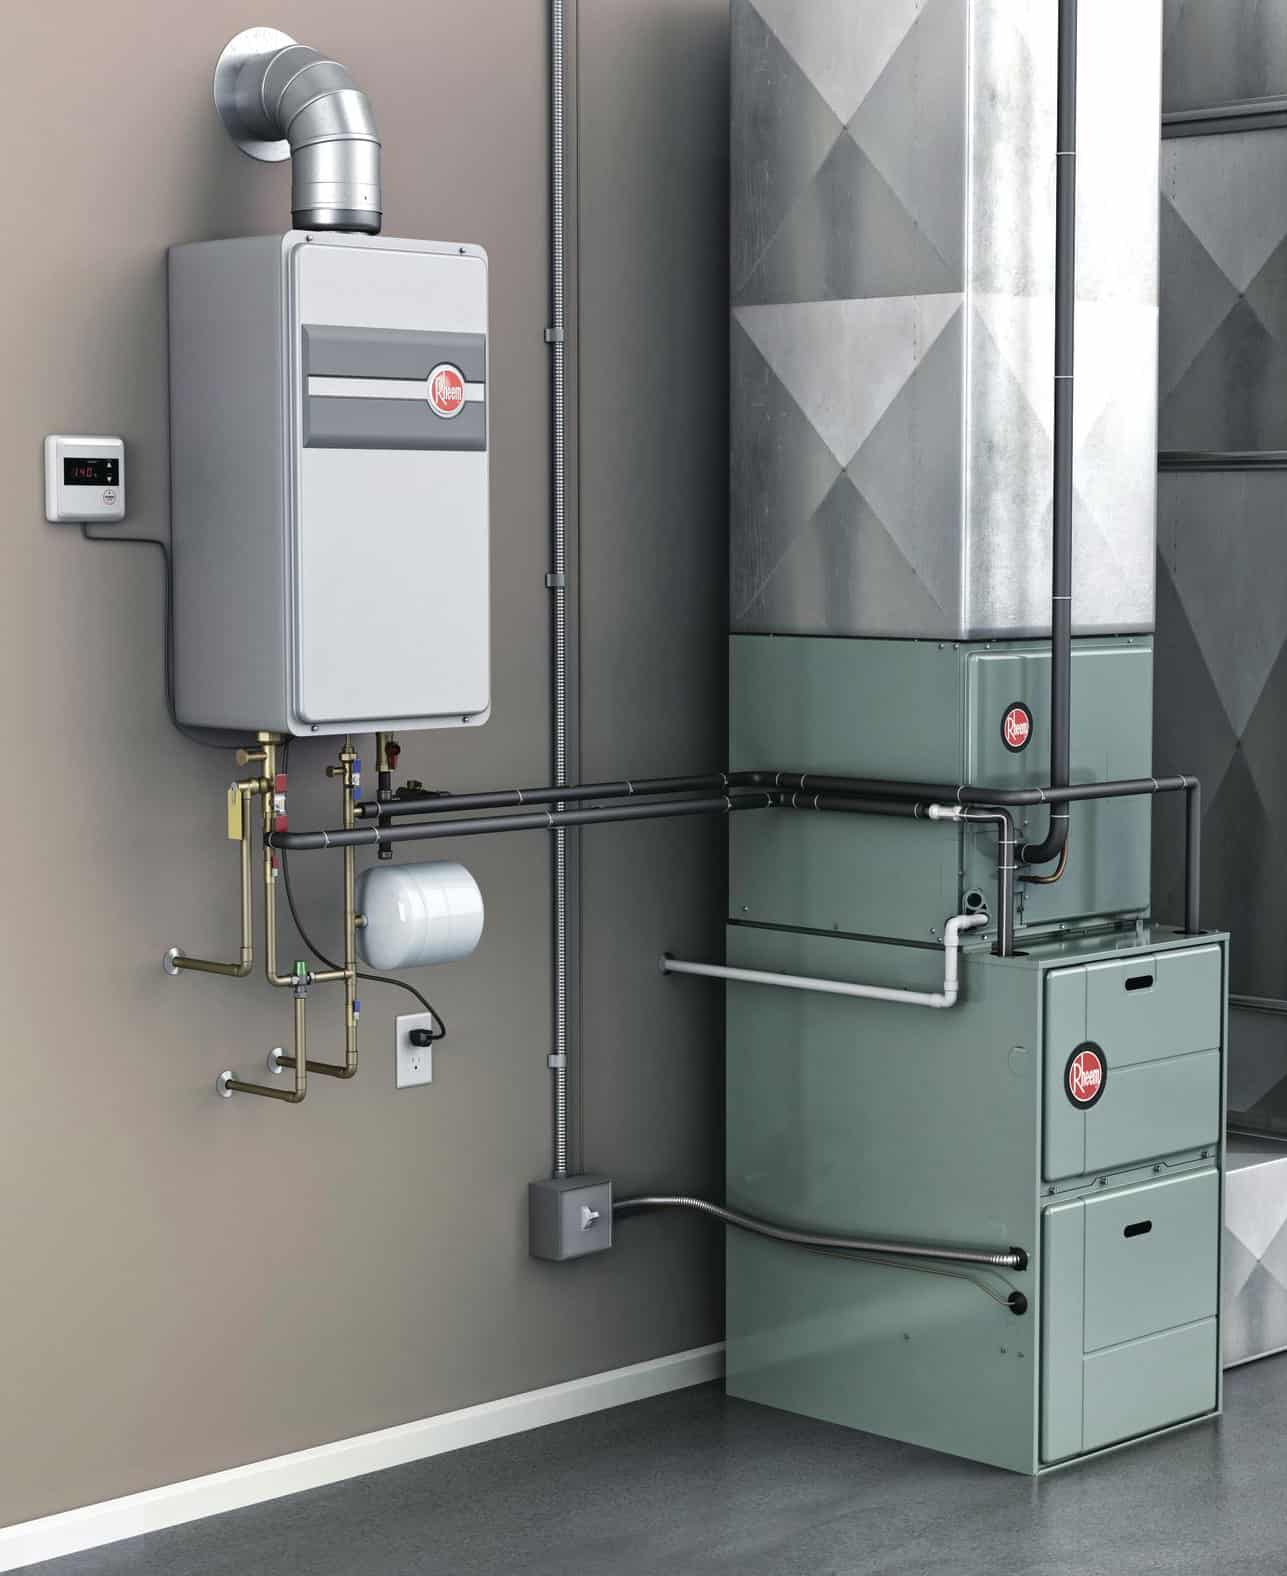 Tankless water heater are great space savers.